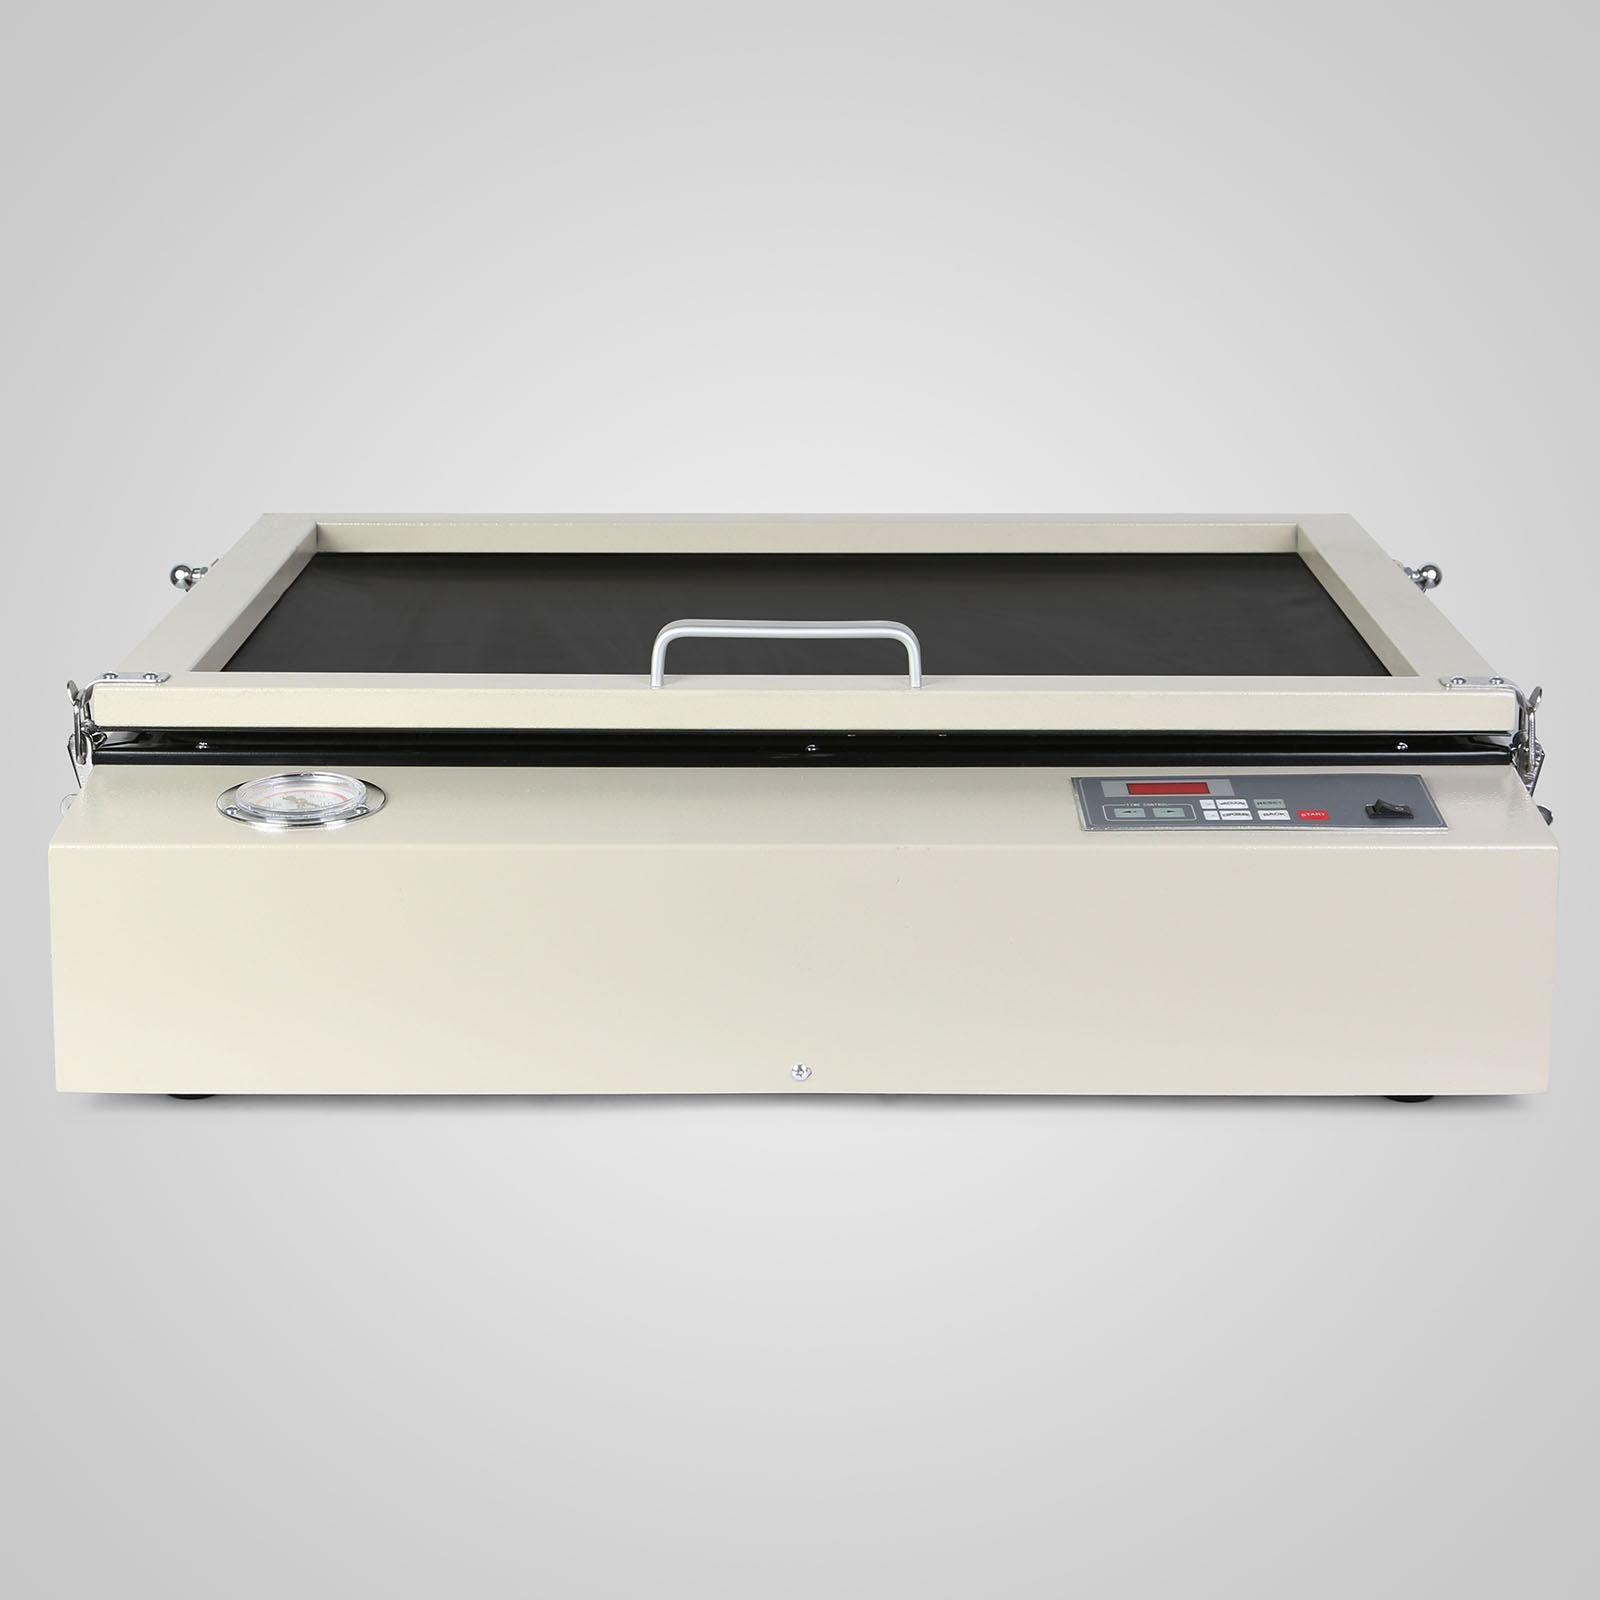 Diy Vacuum Table Screen Printing 50cmx60cm 20 Quotx24 Quot Vacuum Uv Exposure Unit Screen